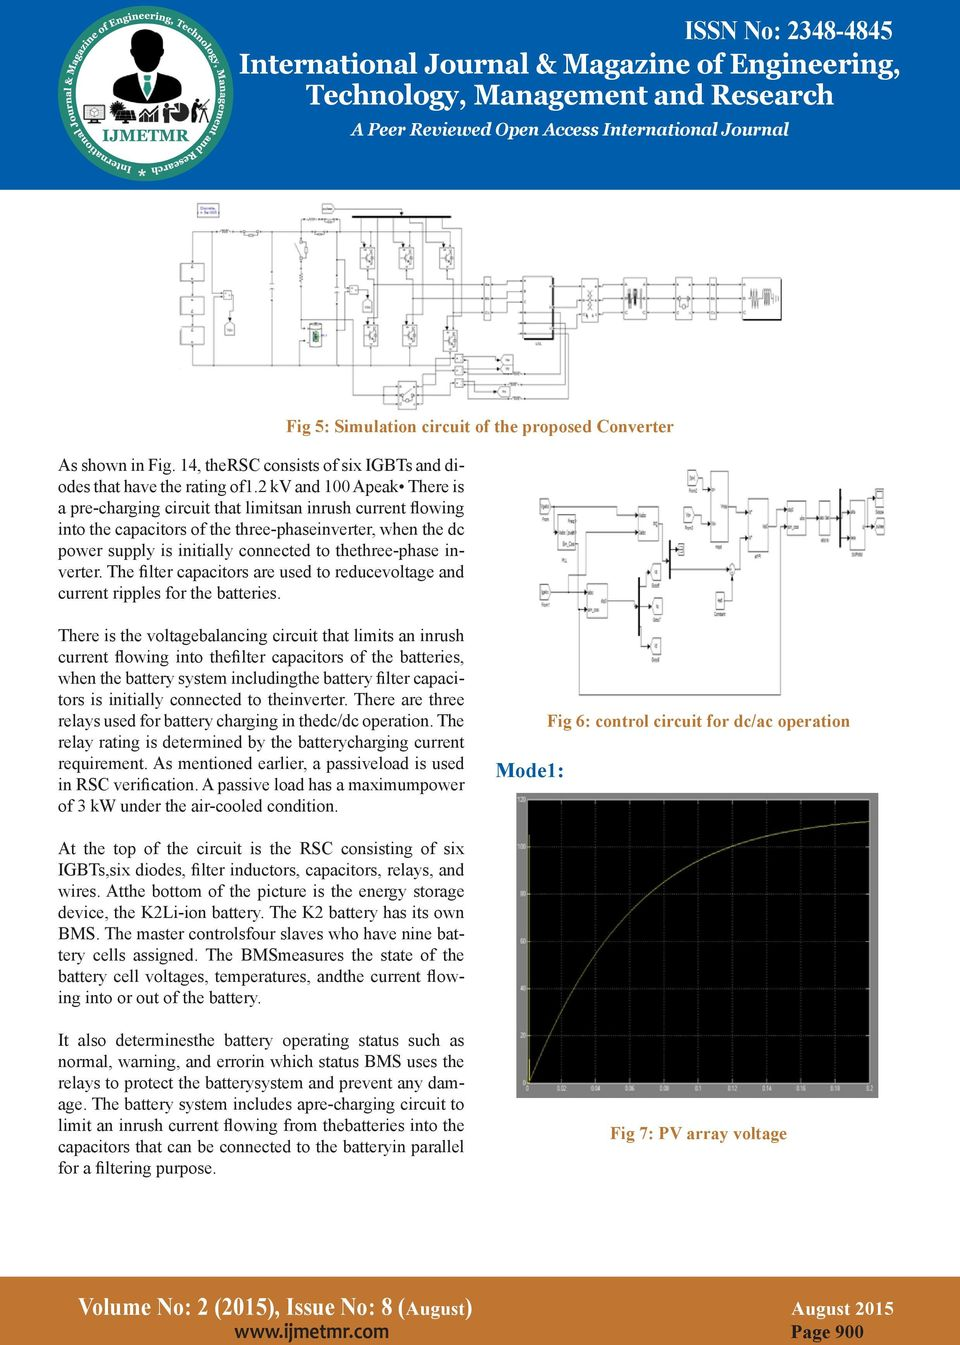 A Novel Converter Topology For Hybrid Renewable Energy System Cell Voltage Circuit Thethree Phase Inverter The Filter Capacitors Are Used To Reducevoltage And Current Ripples